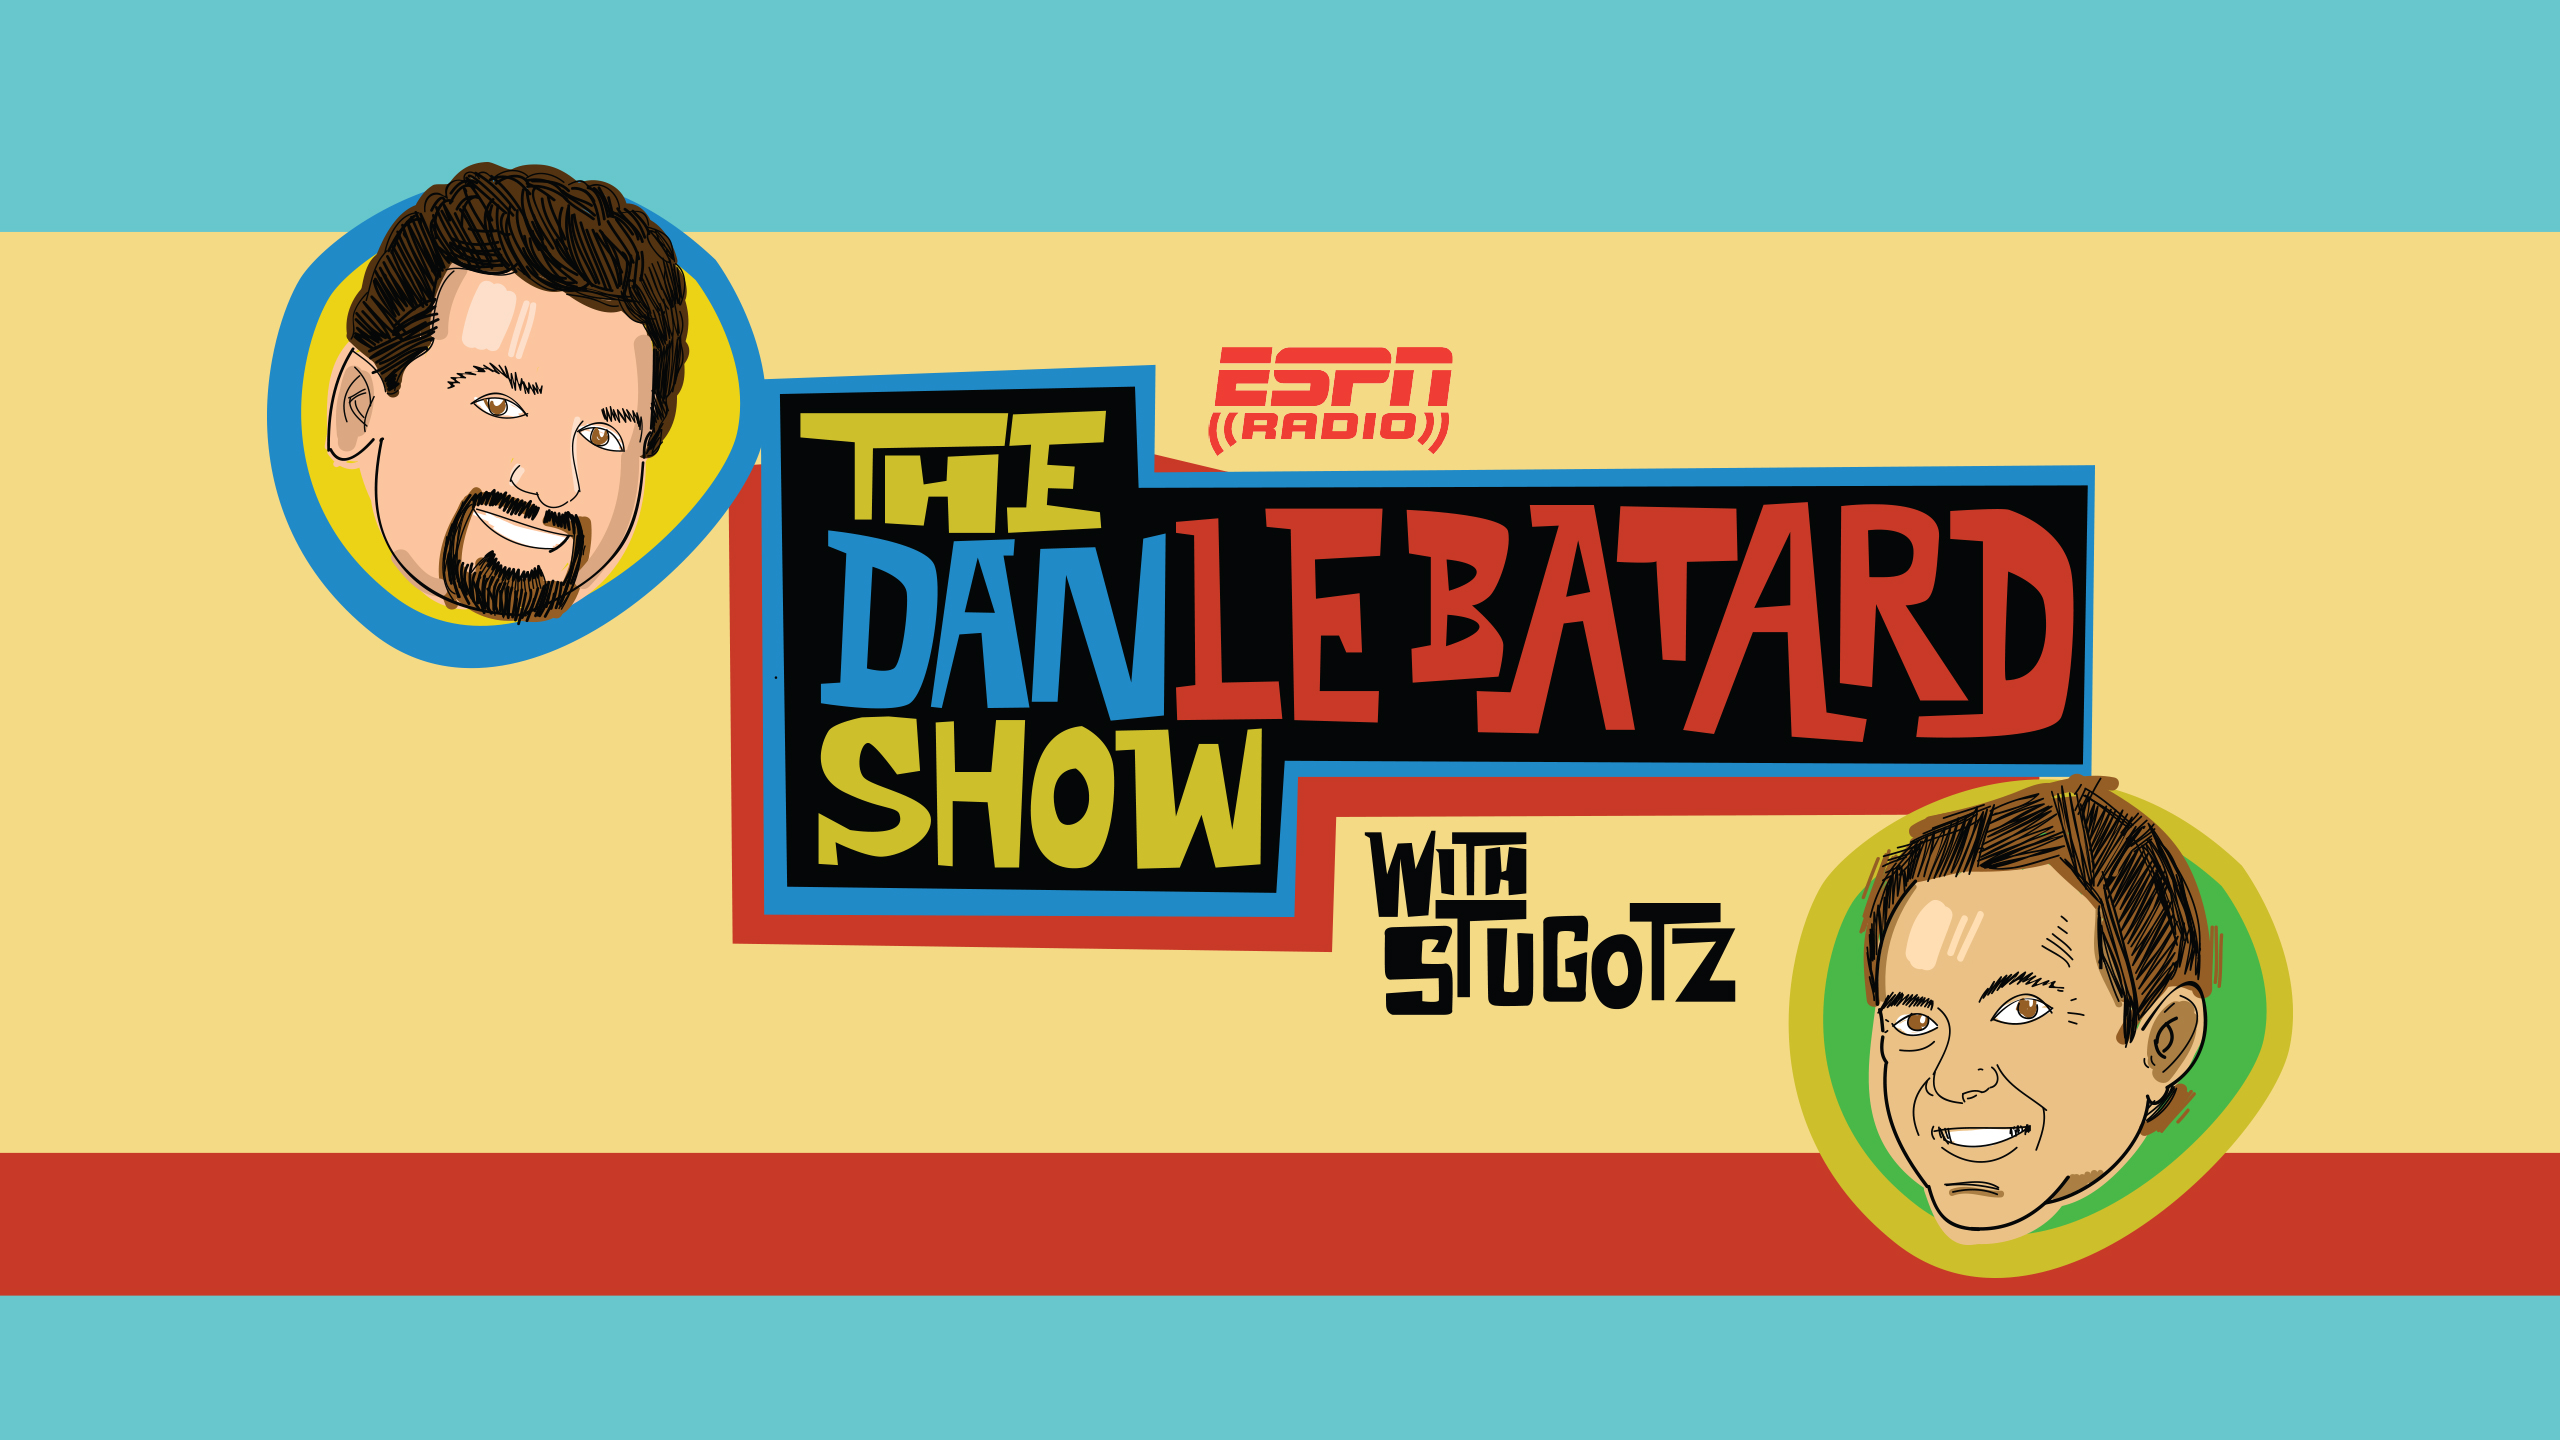 Mon, 3/18 - The Dan Le Batard Show with Stugotz Presented by Progressive